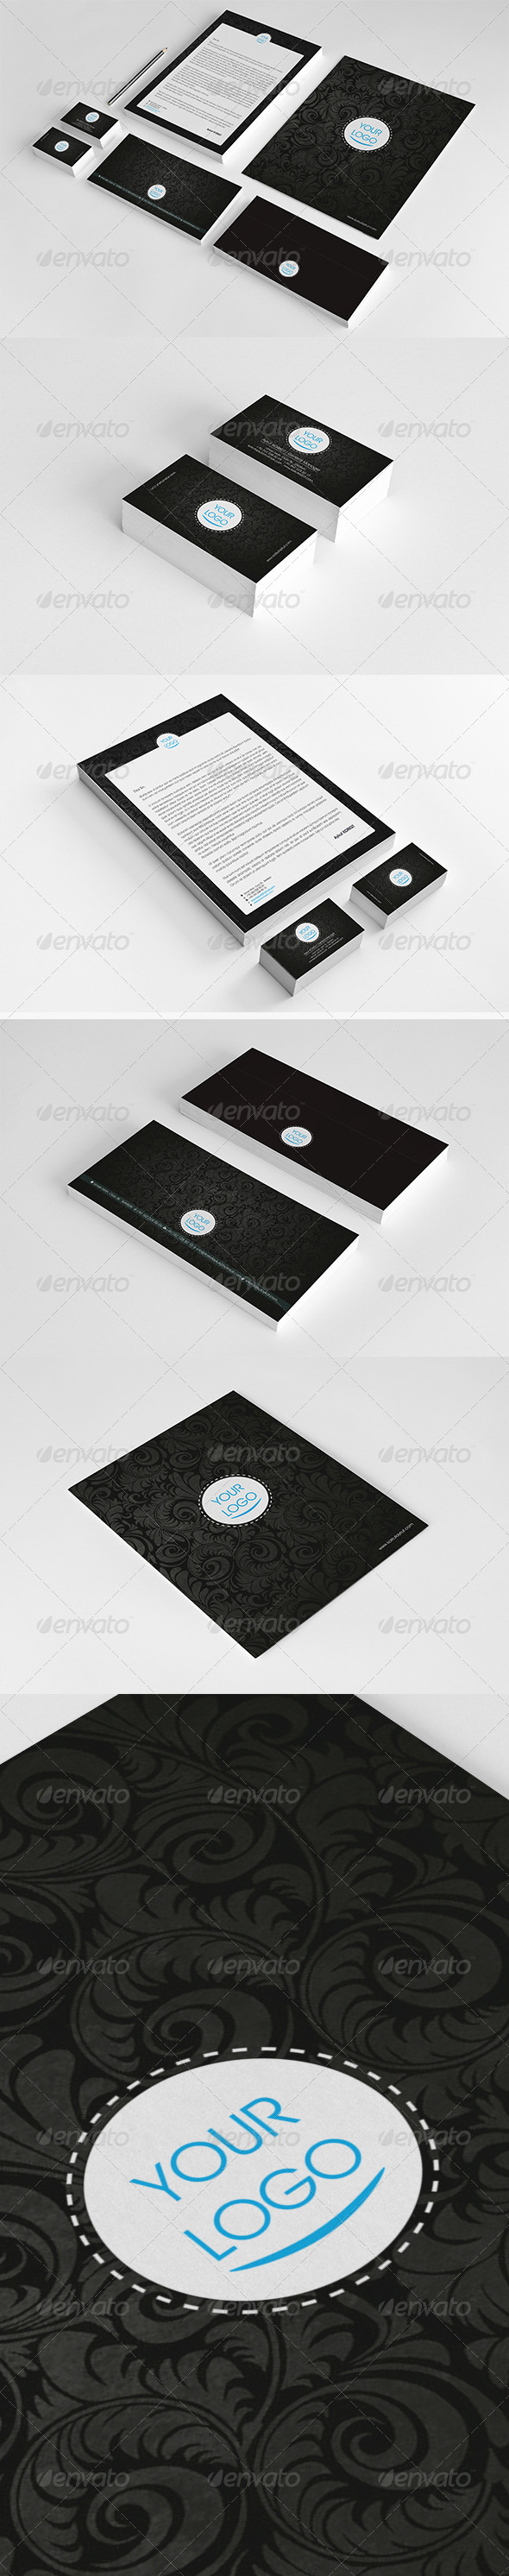 GraphicRiver Colin Corporate Identity Package 6861055